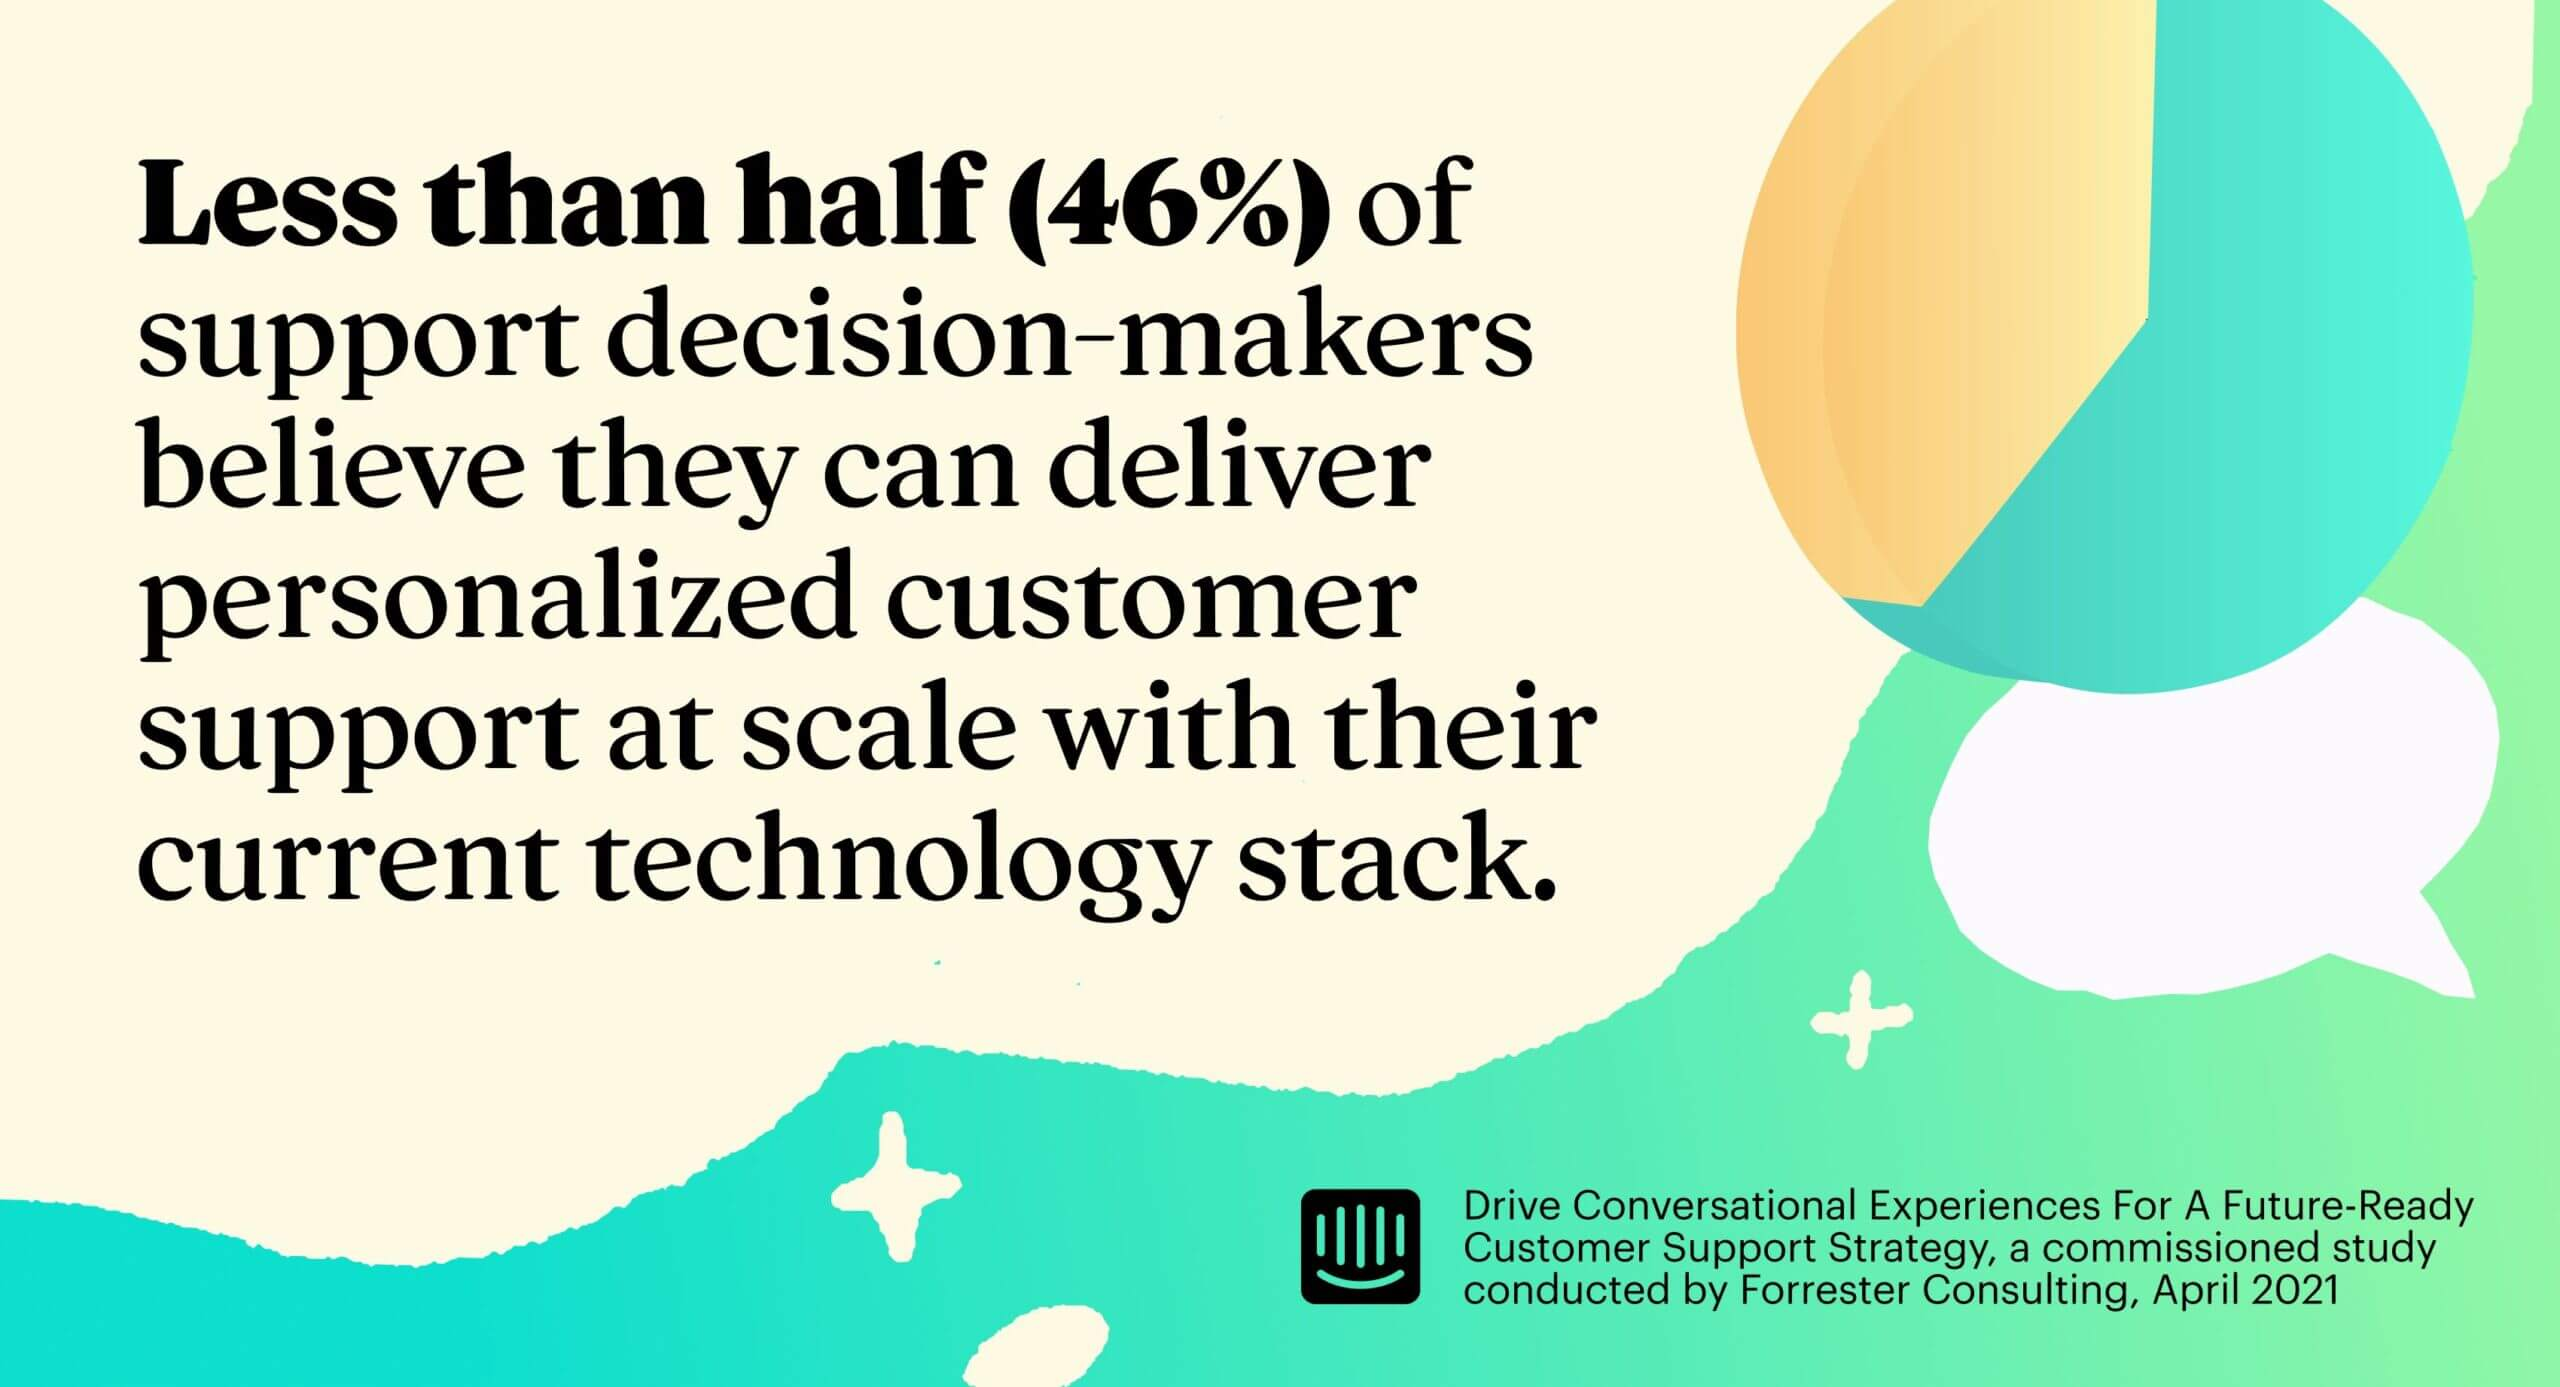 Less than half (46%) of support decision-makers believe they can deliver personalized customer support at scale with their current technology stack.